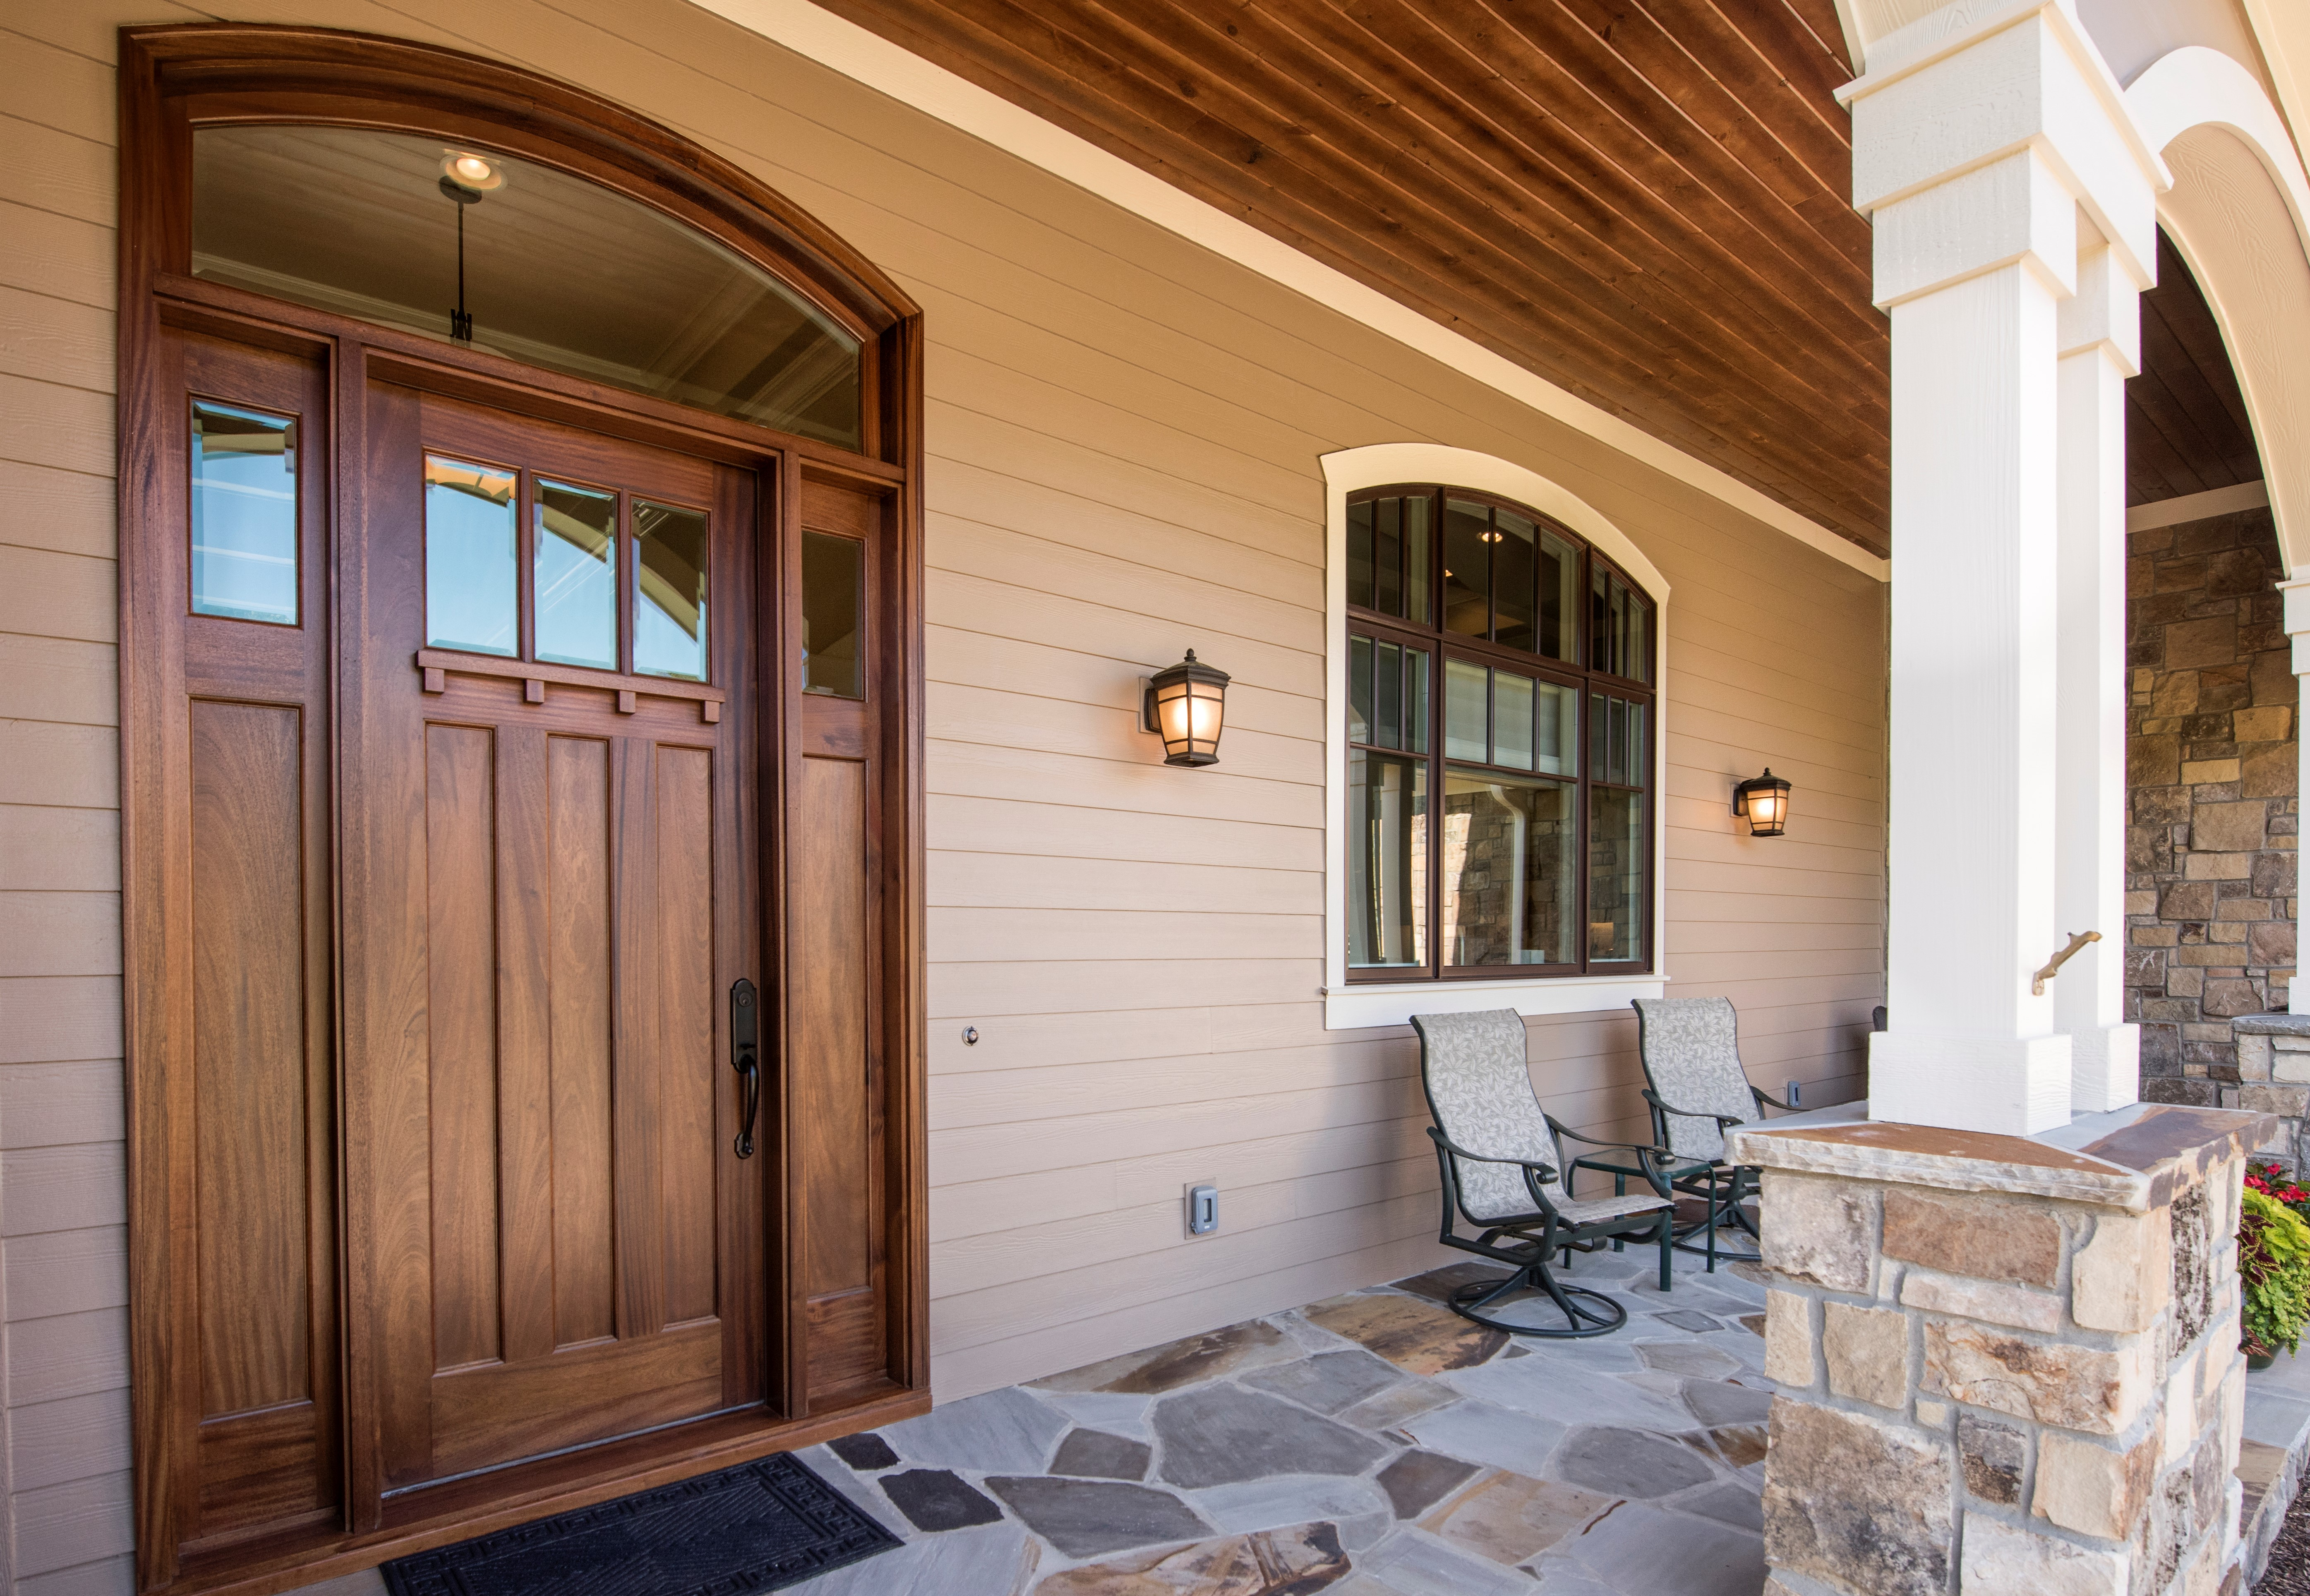 Design Elements of Craftsman Style House Plans | Don Gardner on front home design, front house paint design, front house wall design, front house lighting design, front house landscape design, front house windows design, front house concrete design,